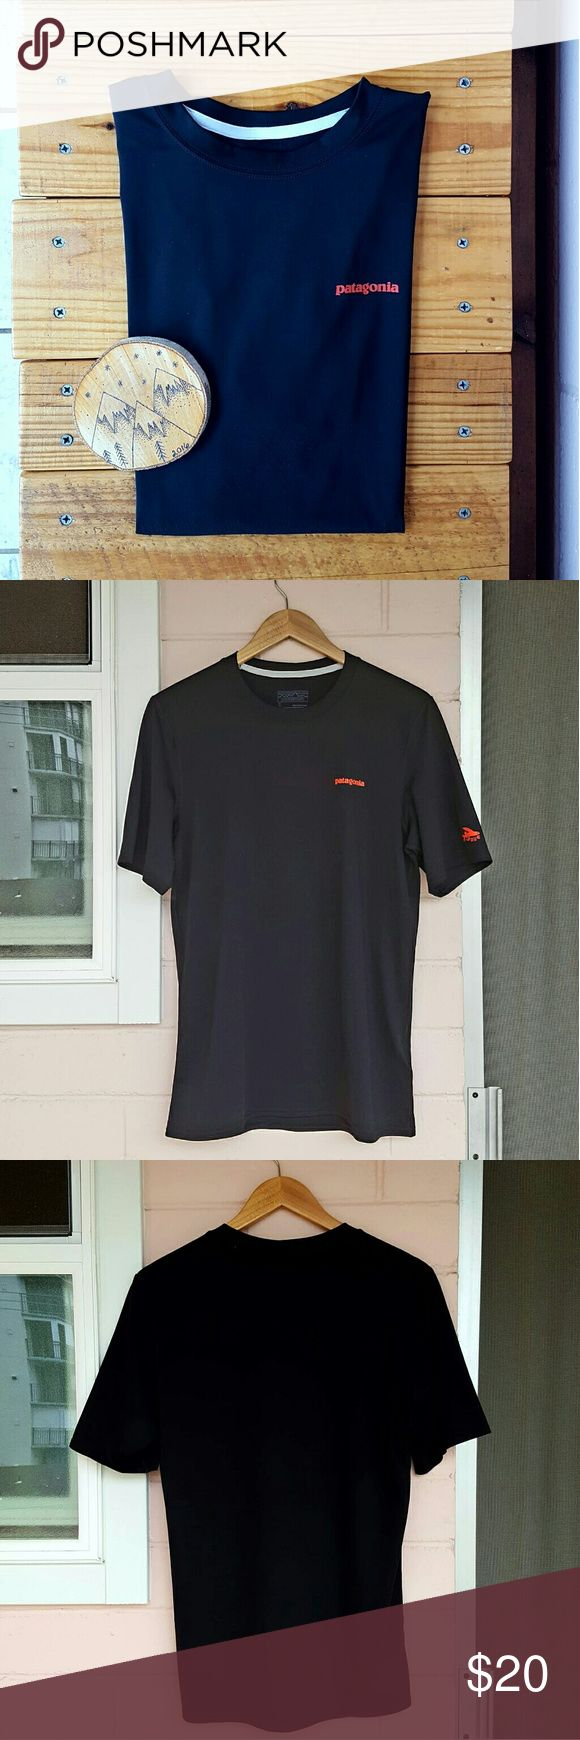 S BLACK PATAGONIA R0 SUN TEE *black tee *size small *stretchy polyester/elastane blend *euc - plenty of life left *comes from a smoke-FREE & pet-FREE home Patagonia Shirts Tees - Short Sleeve